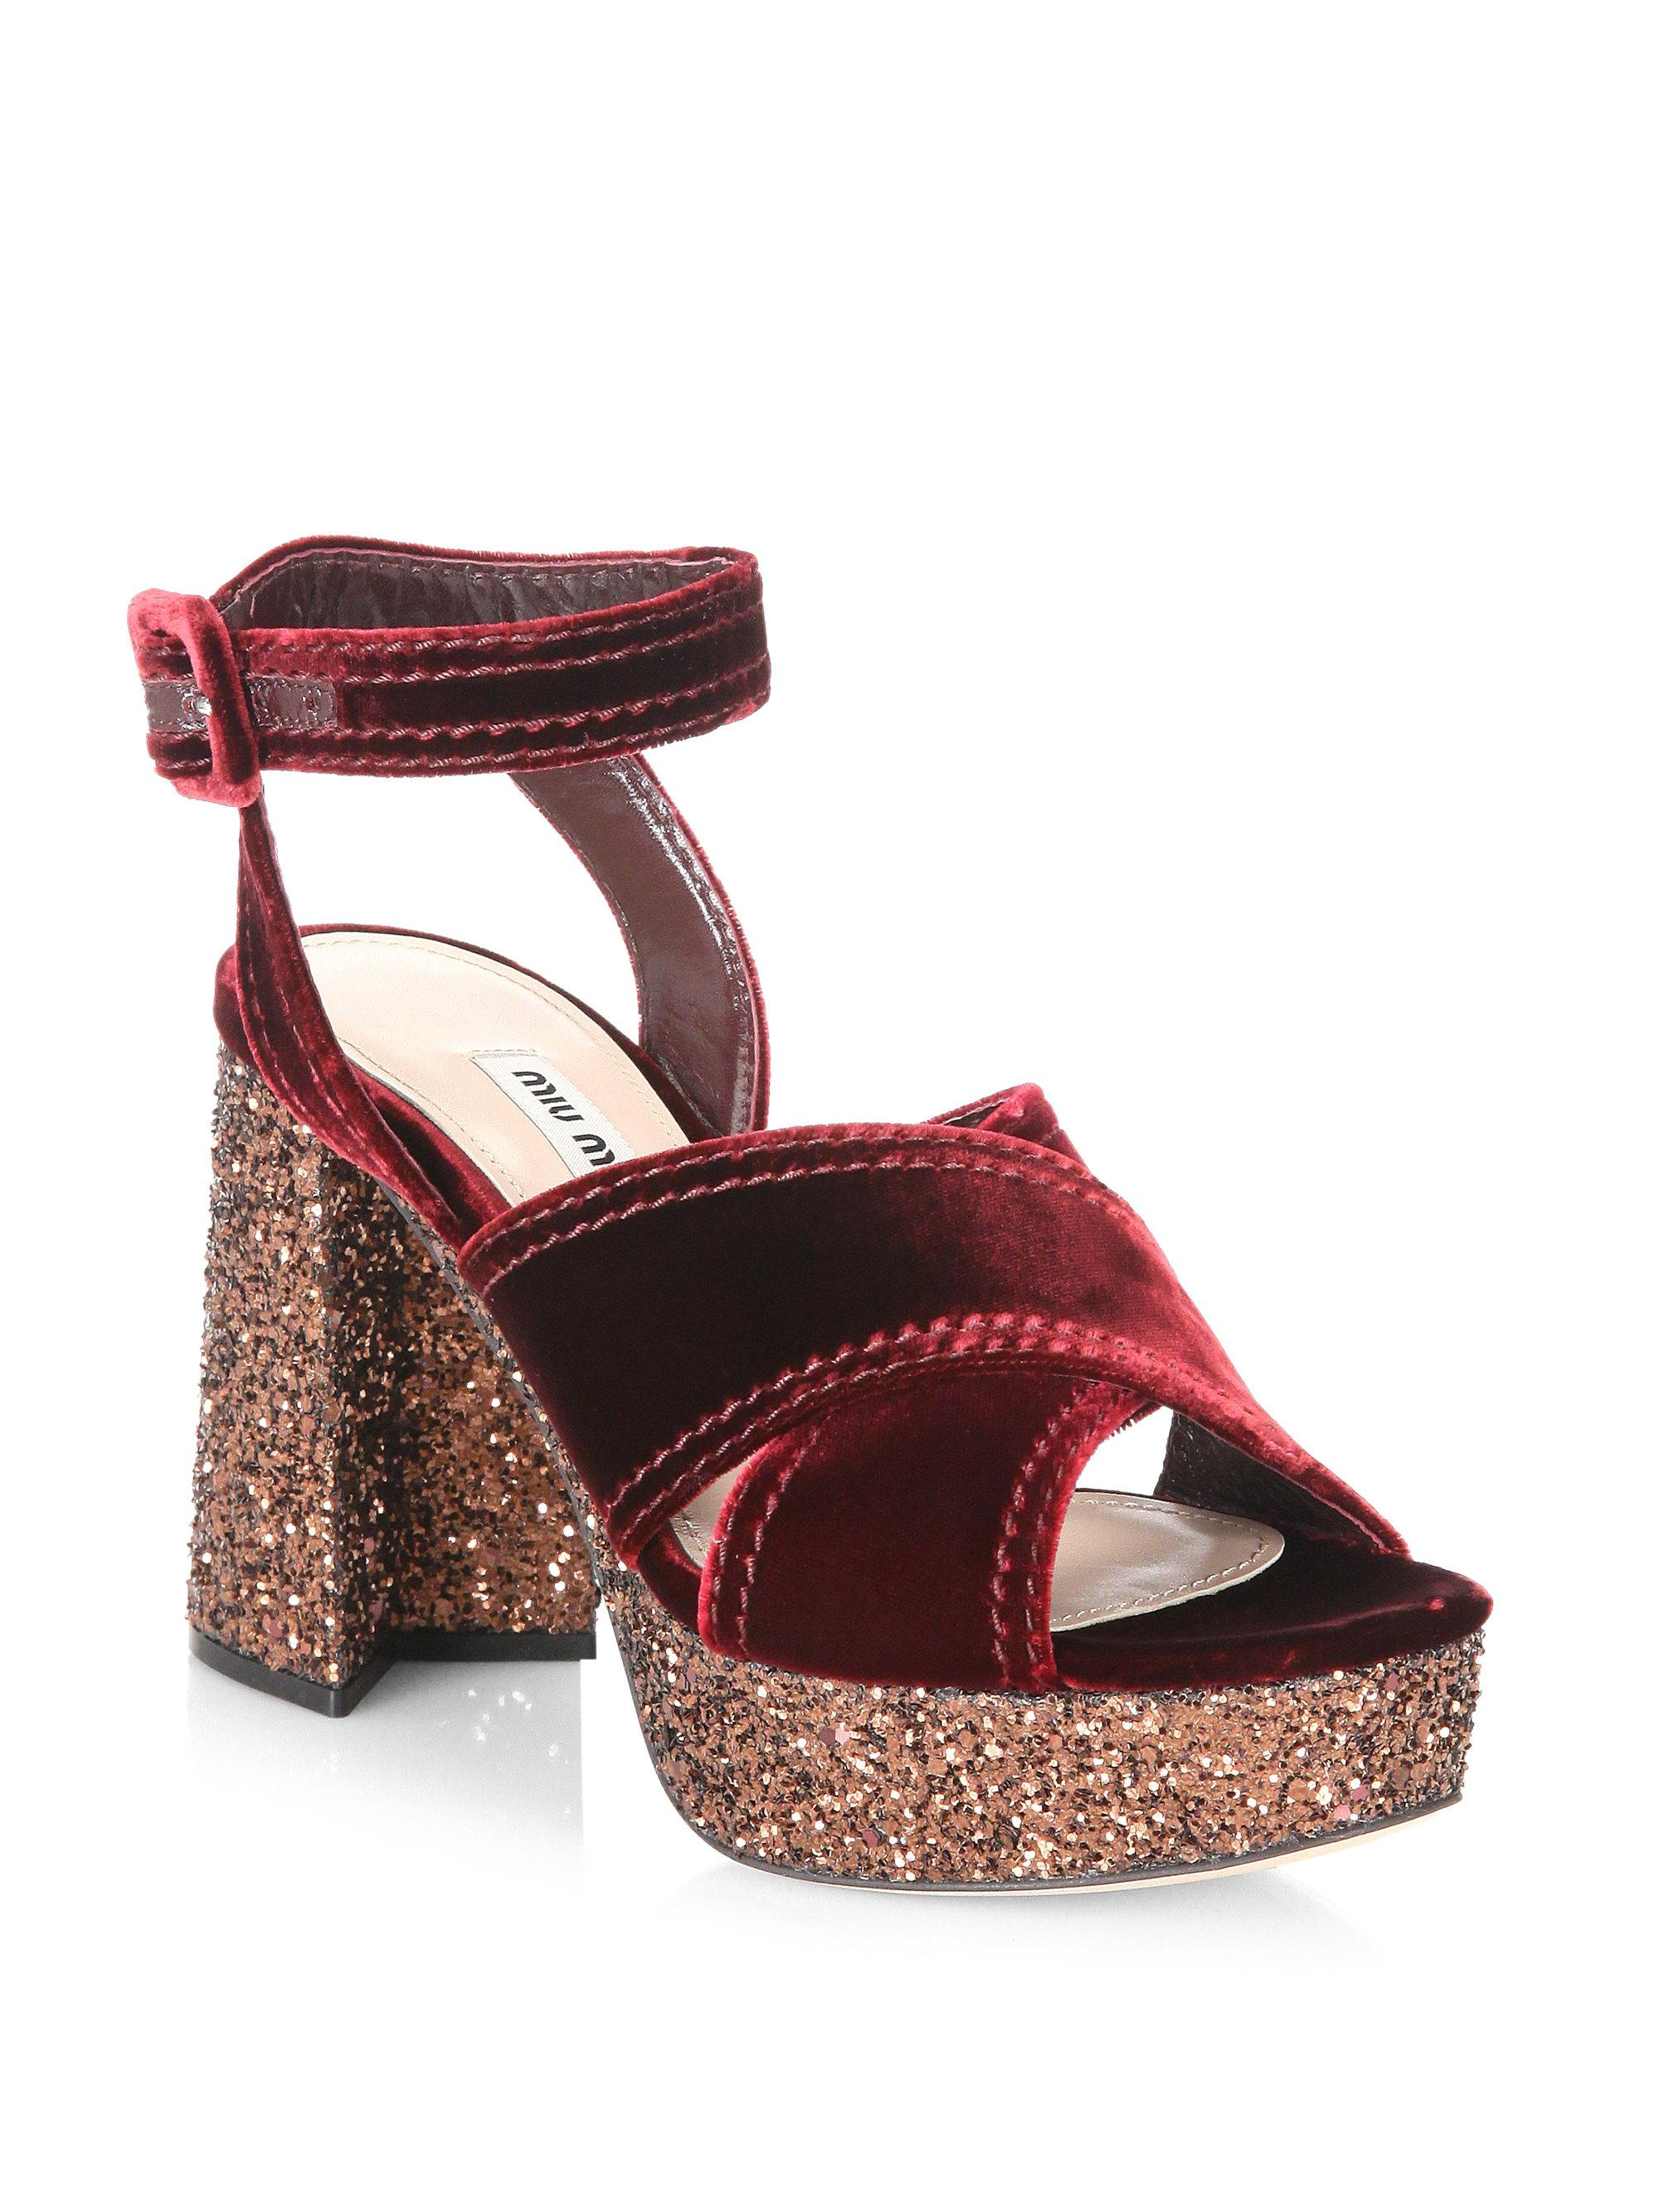 390148687a2a Gallery. Previously sold at  Saks Fifth Avenue · Women s Miu Miu Glitter ...